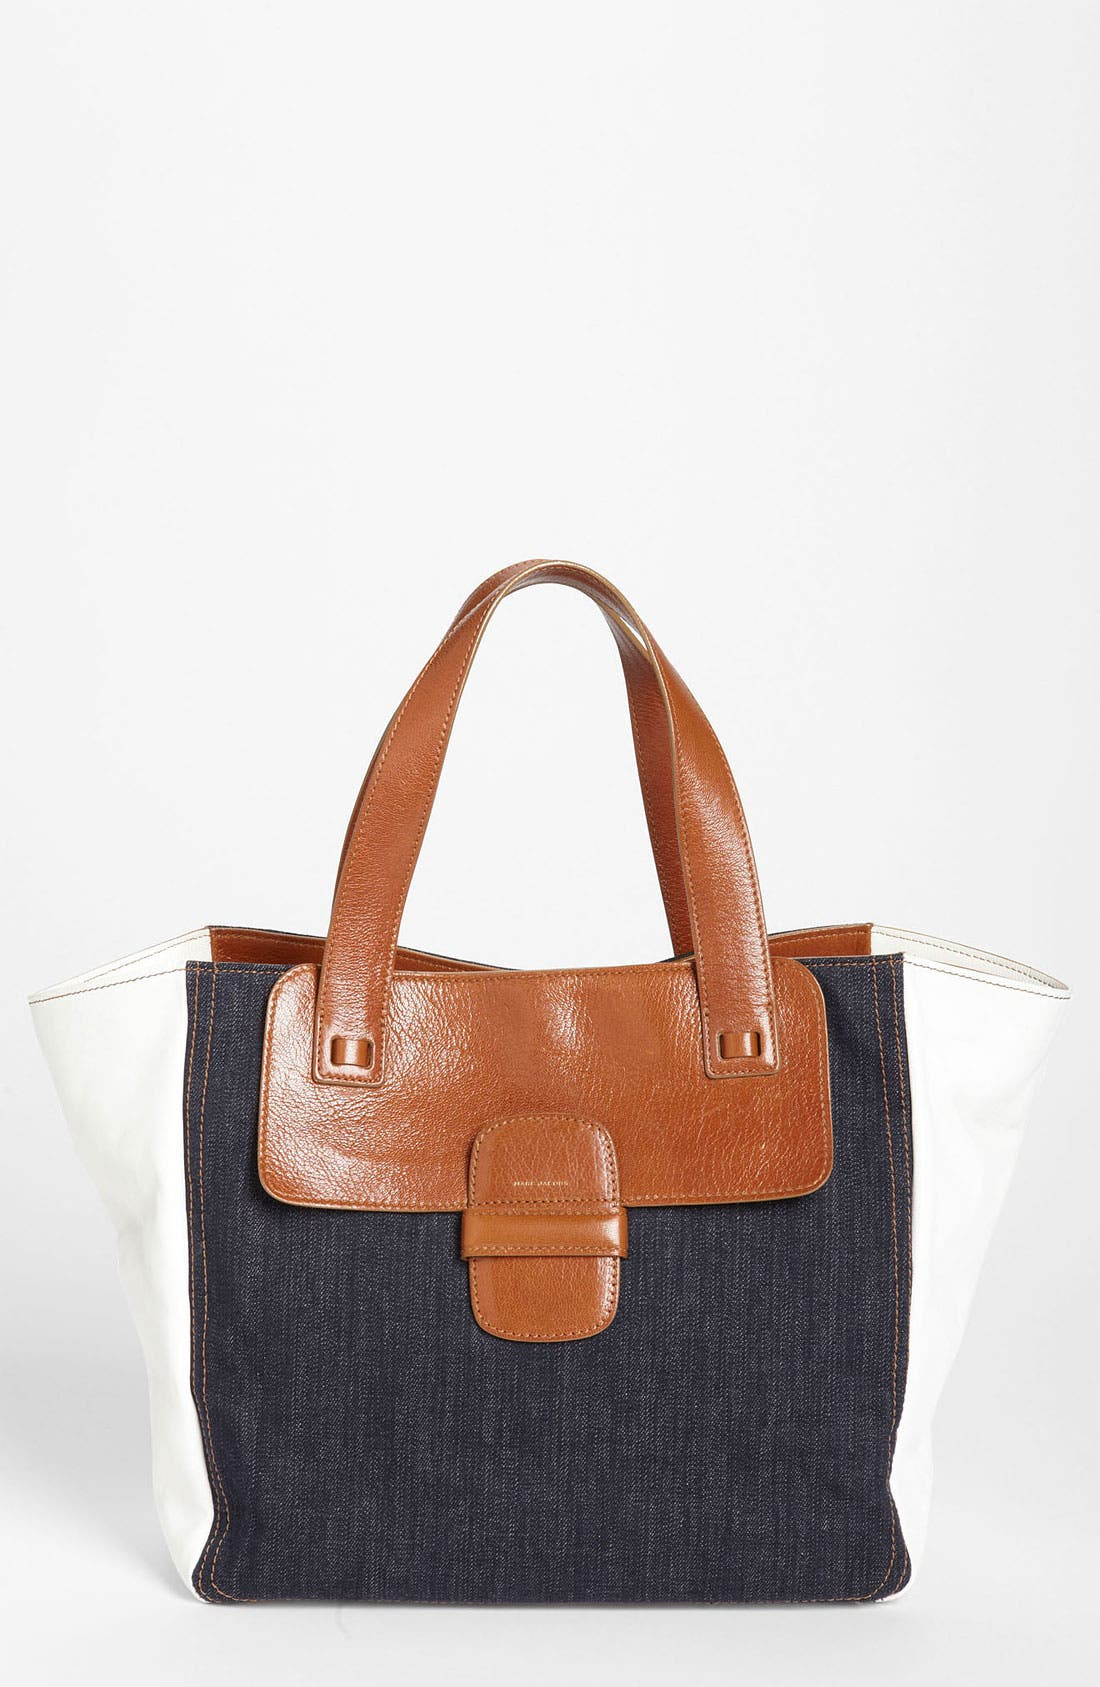 Main Image - MARC JACOBS 'Small Khaki' Denim & Leather Tote